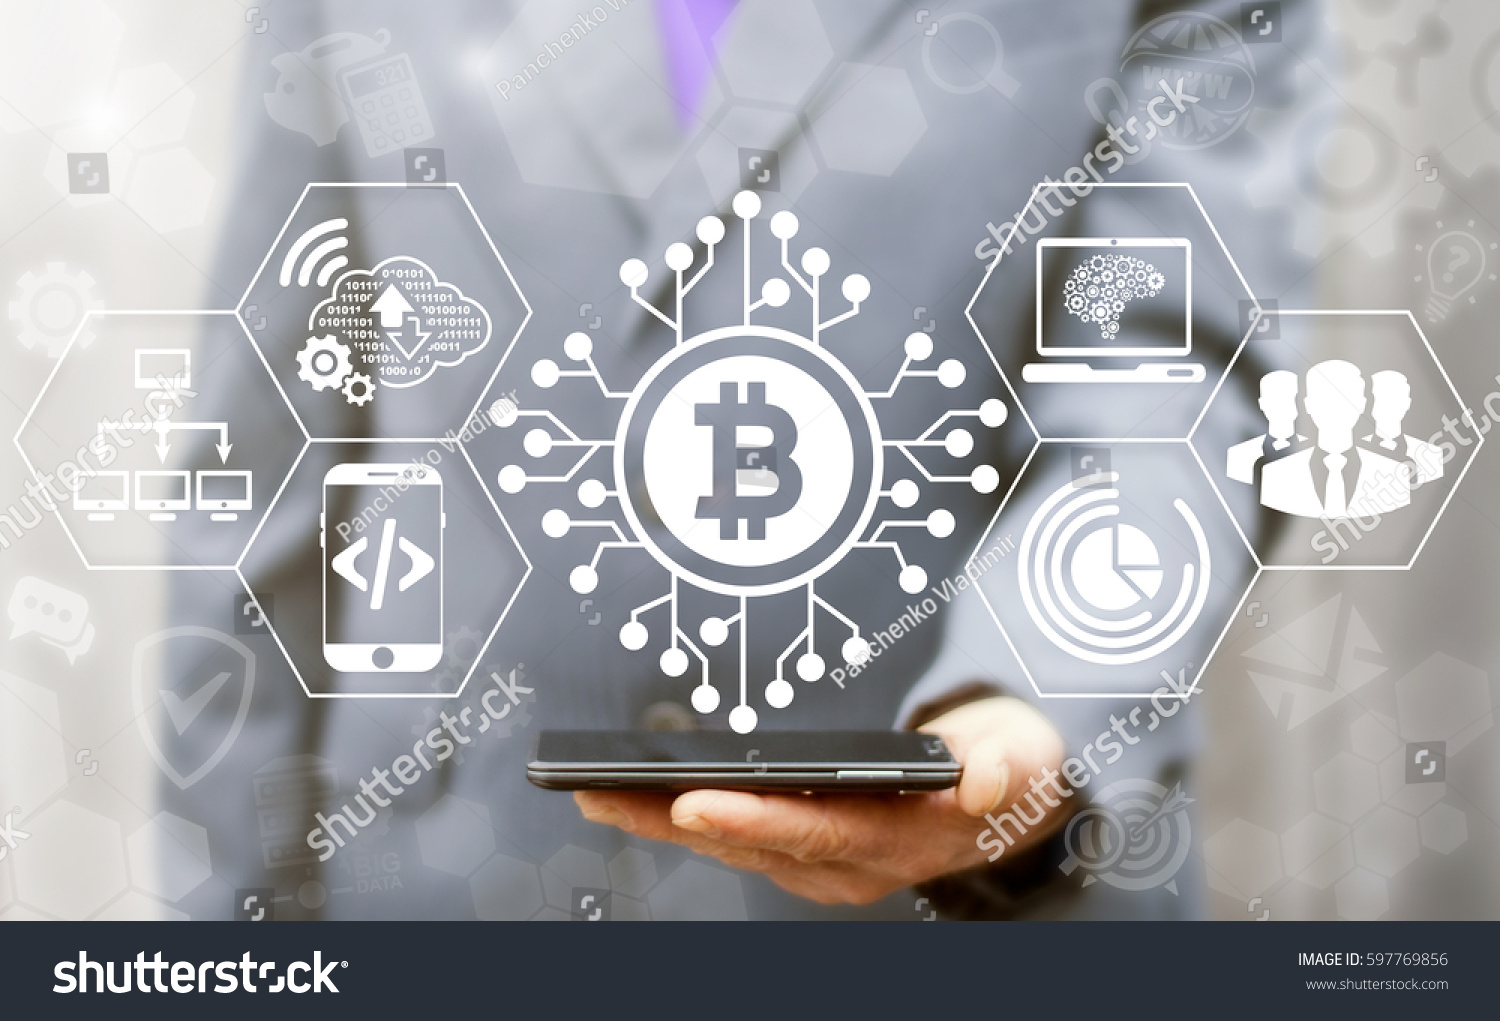 Blockchain finance web money business concept. Man offer smartphone with bitcoin microcircuit icon on virtual financial screen. Internet cryptocurrency block chain production and generation technology #597769856